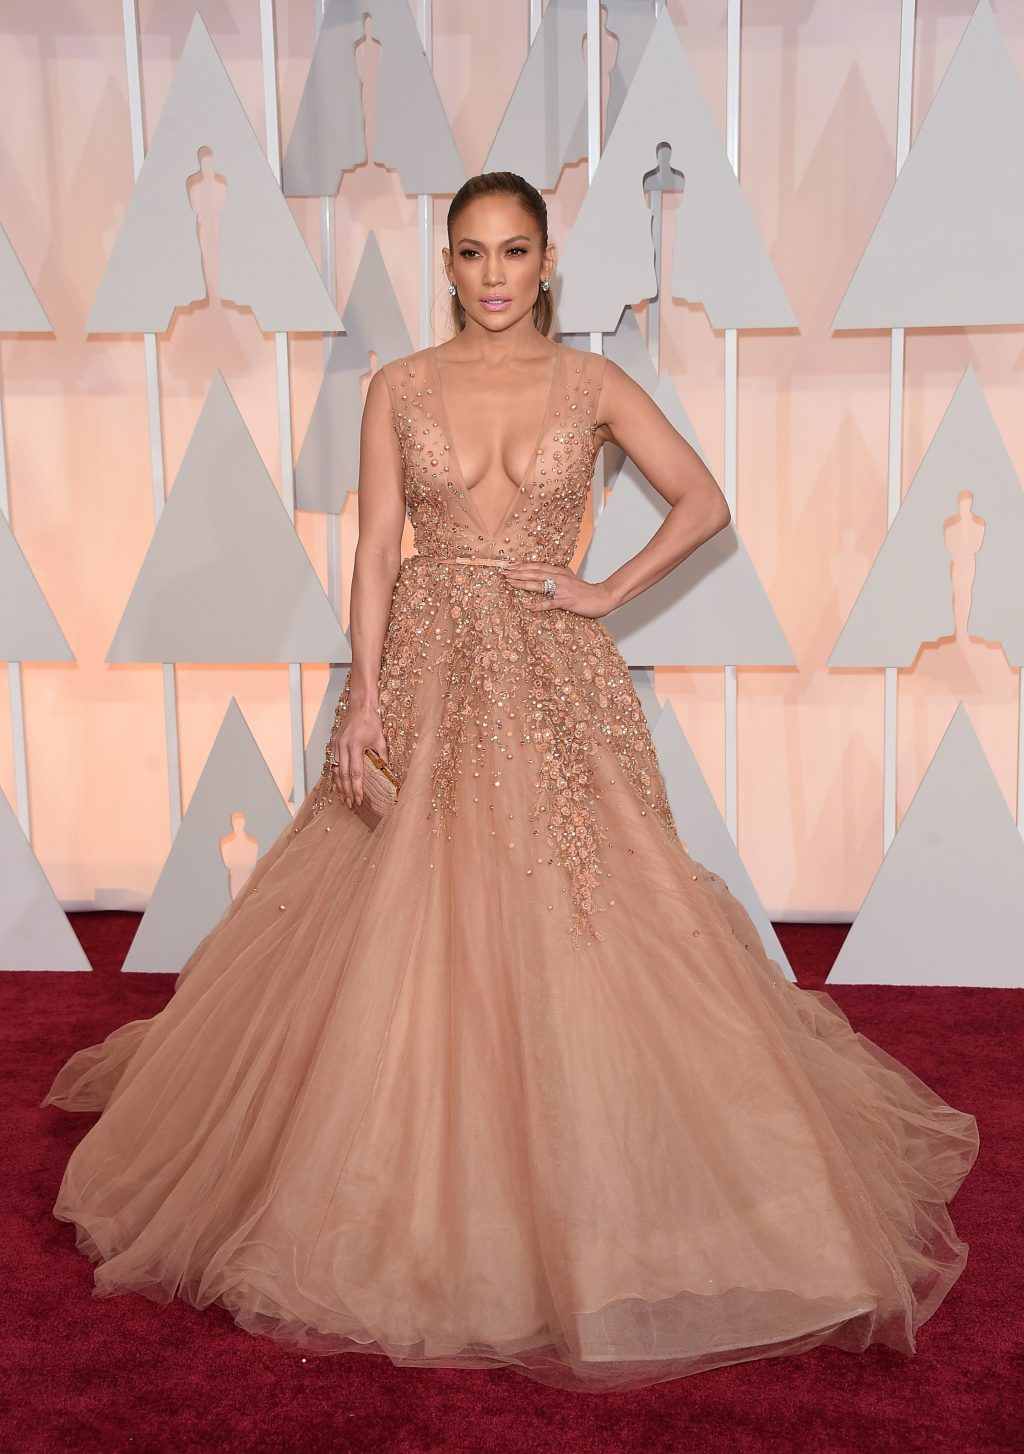 From J.Lo to J.Law: These Are the Most Iconic Oscar Dresses of All Time